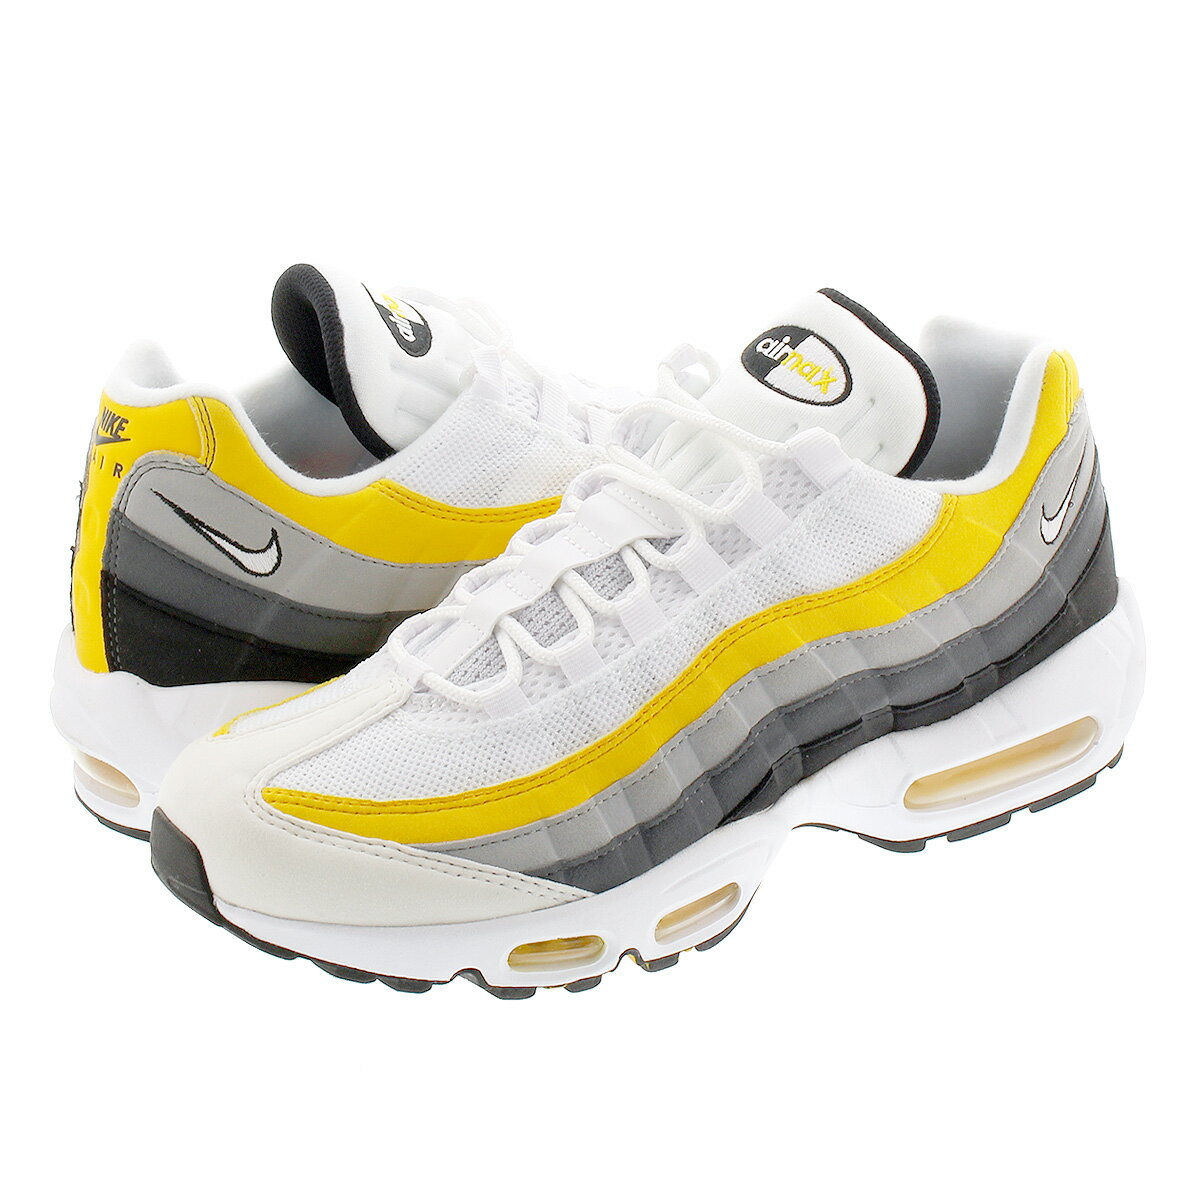 Nike Air Max 95 Amarillo Dark Grey CD7495 100 Release Date SBD